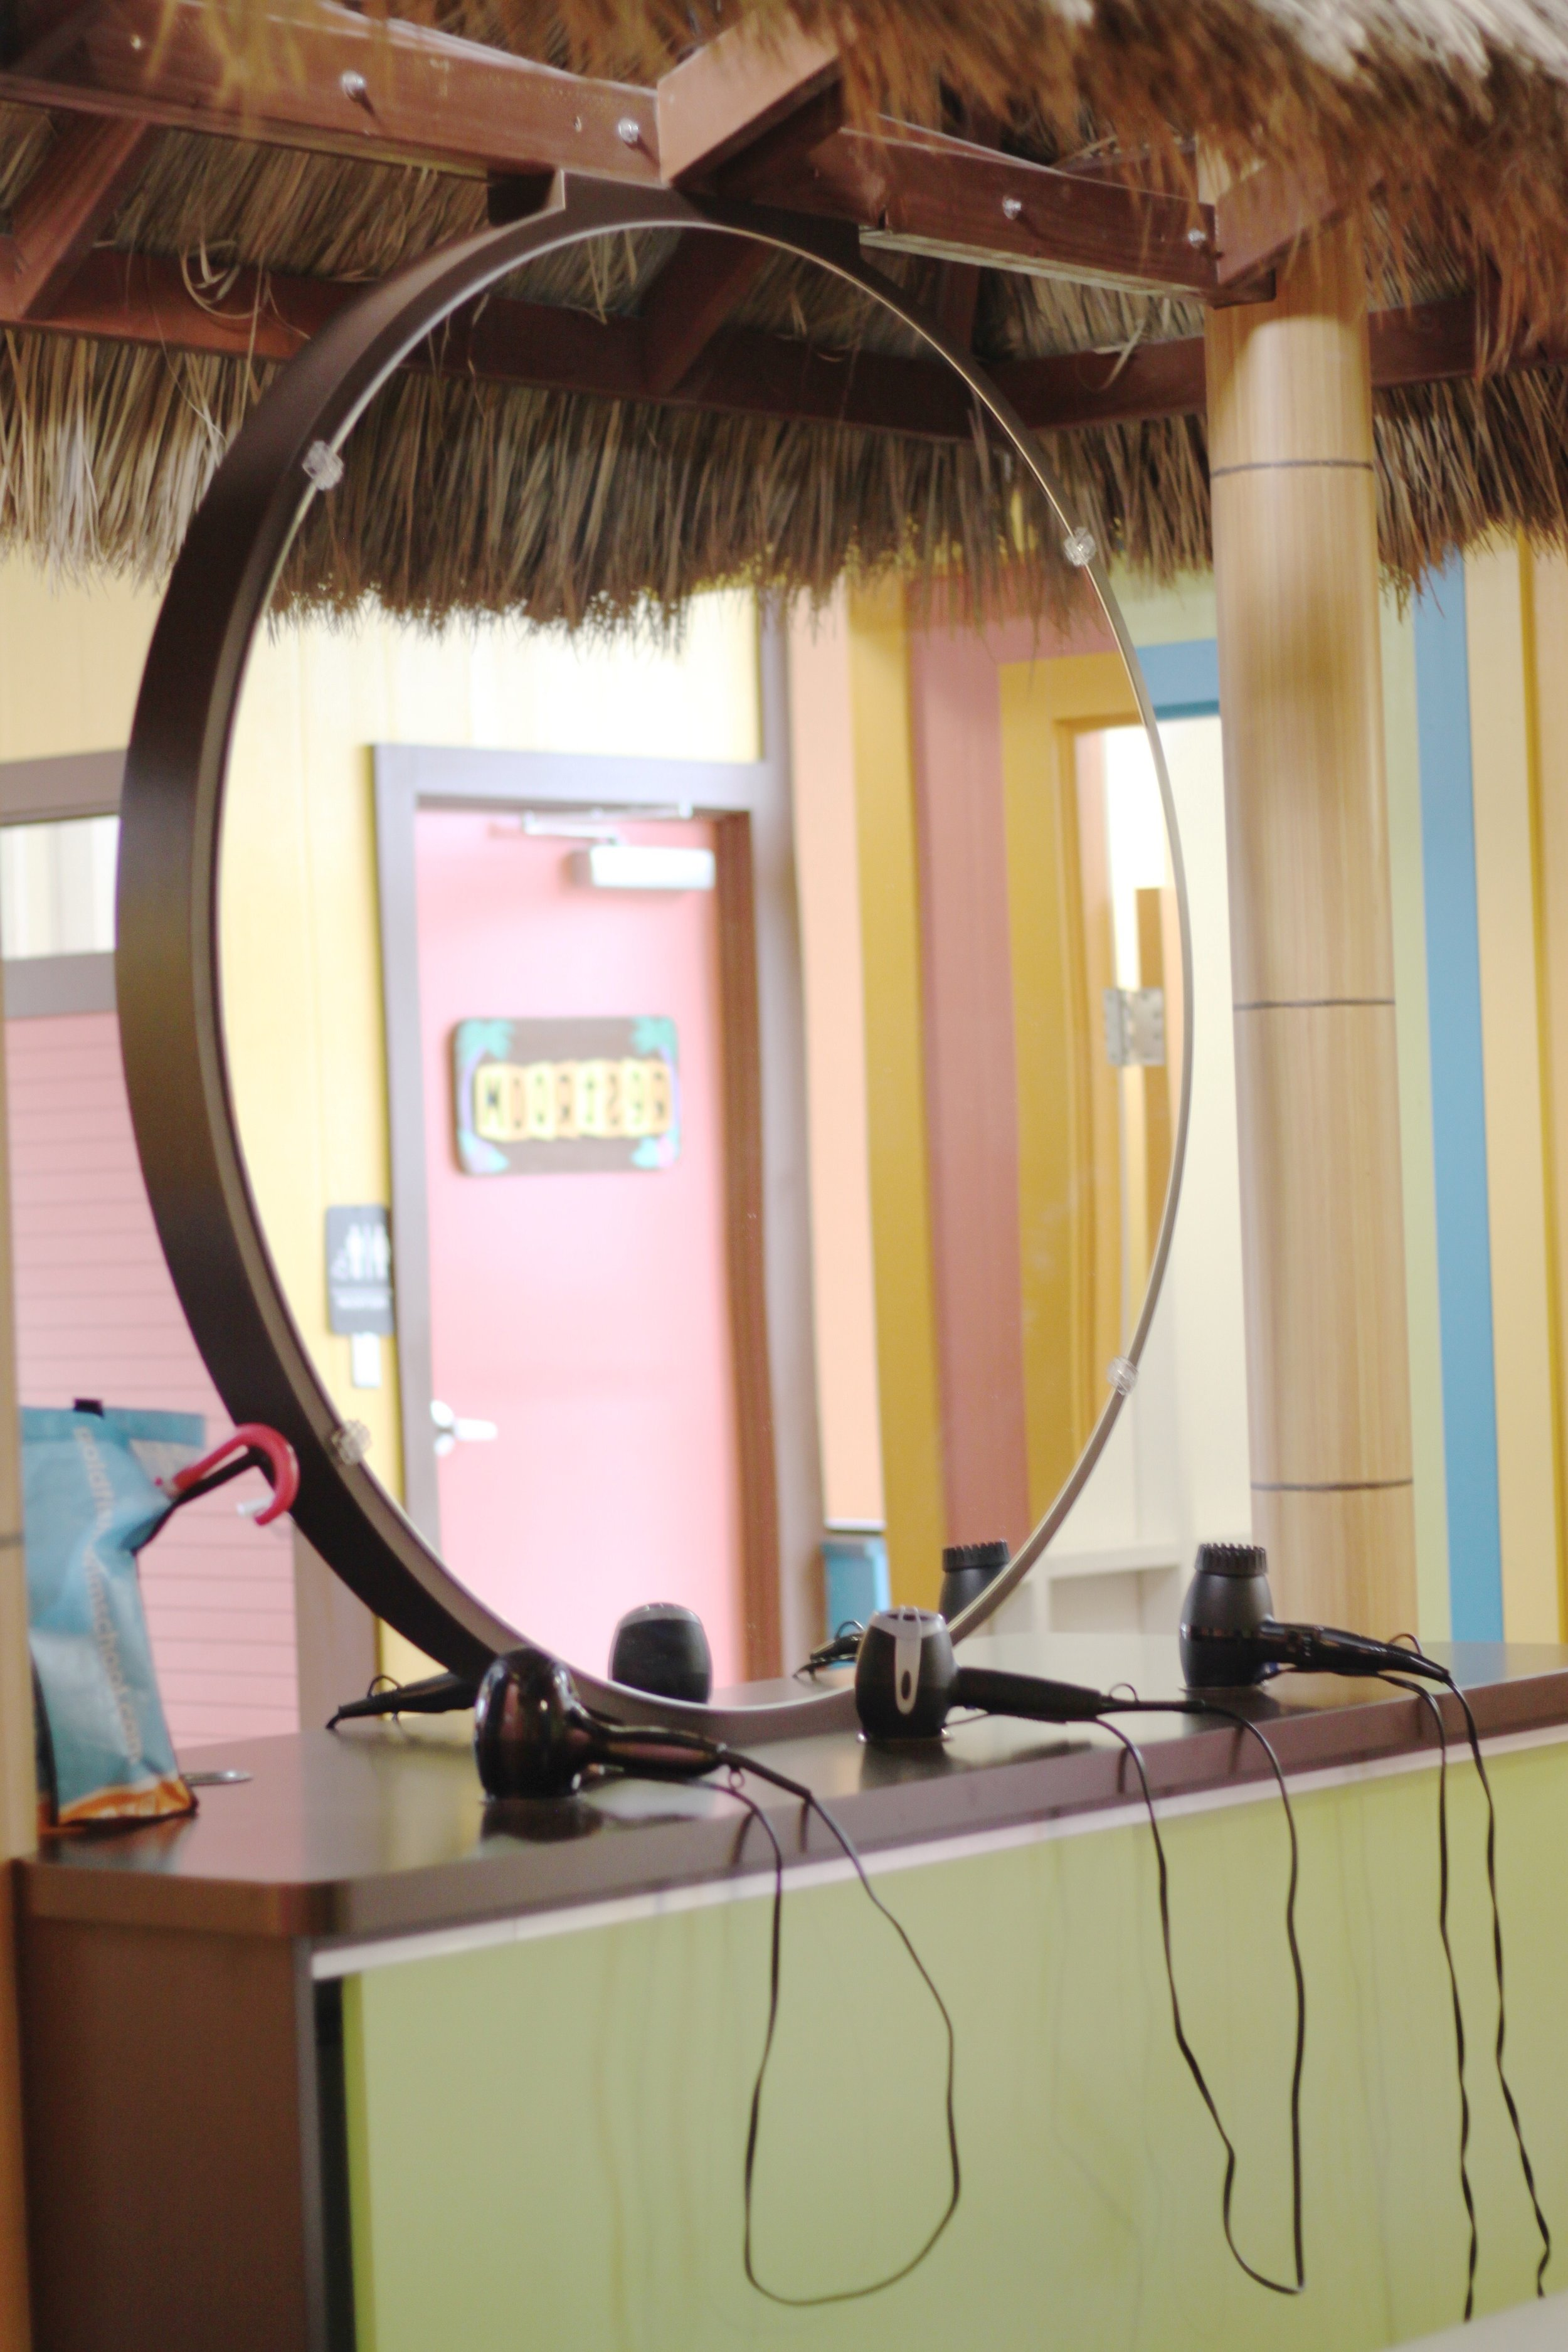 Blow dryers, swimsuit dryers, roomy changing cabanas... Have you signed up yet?